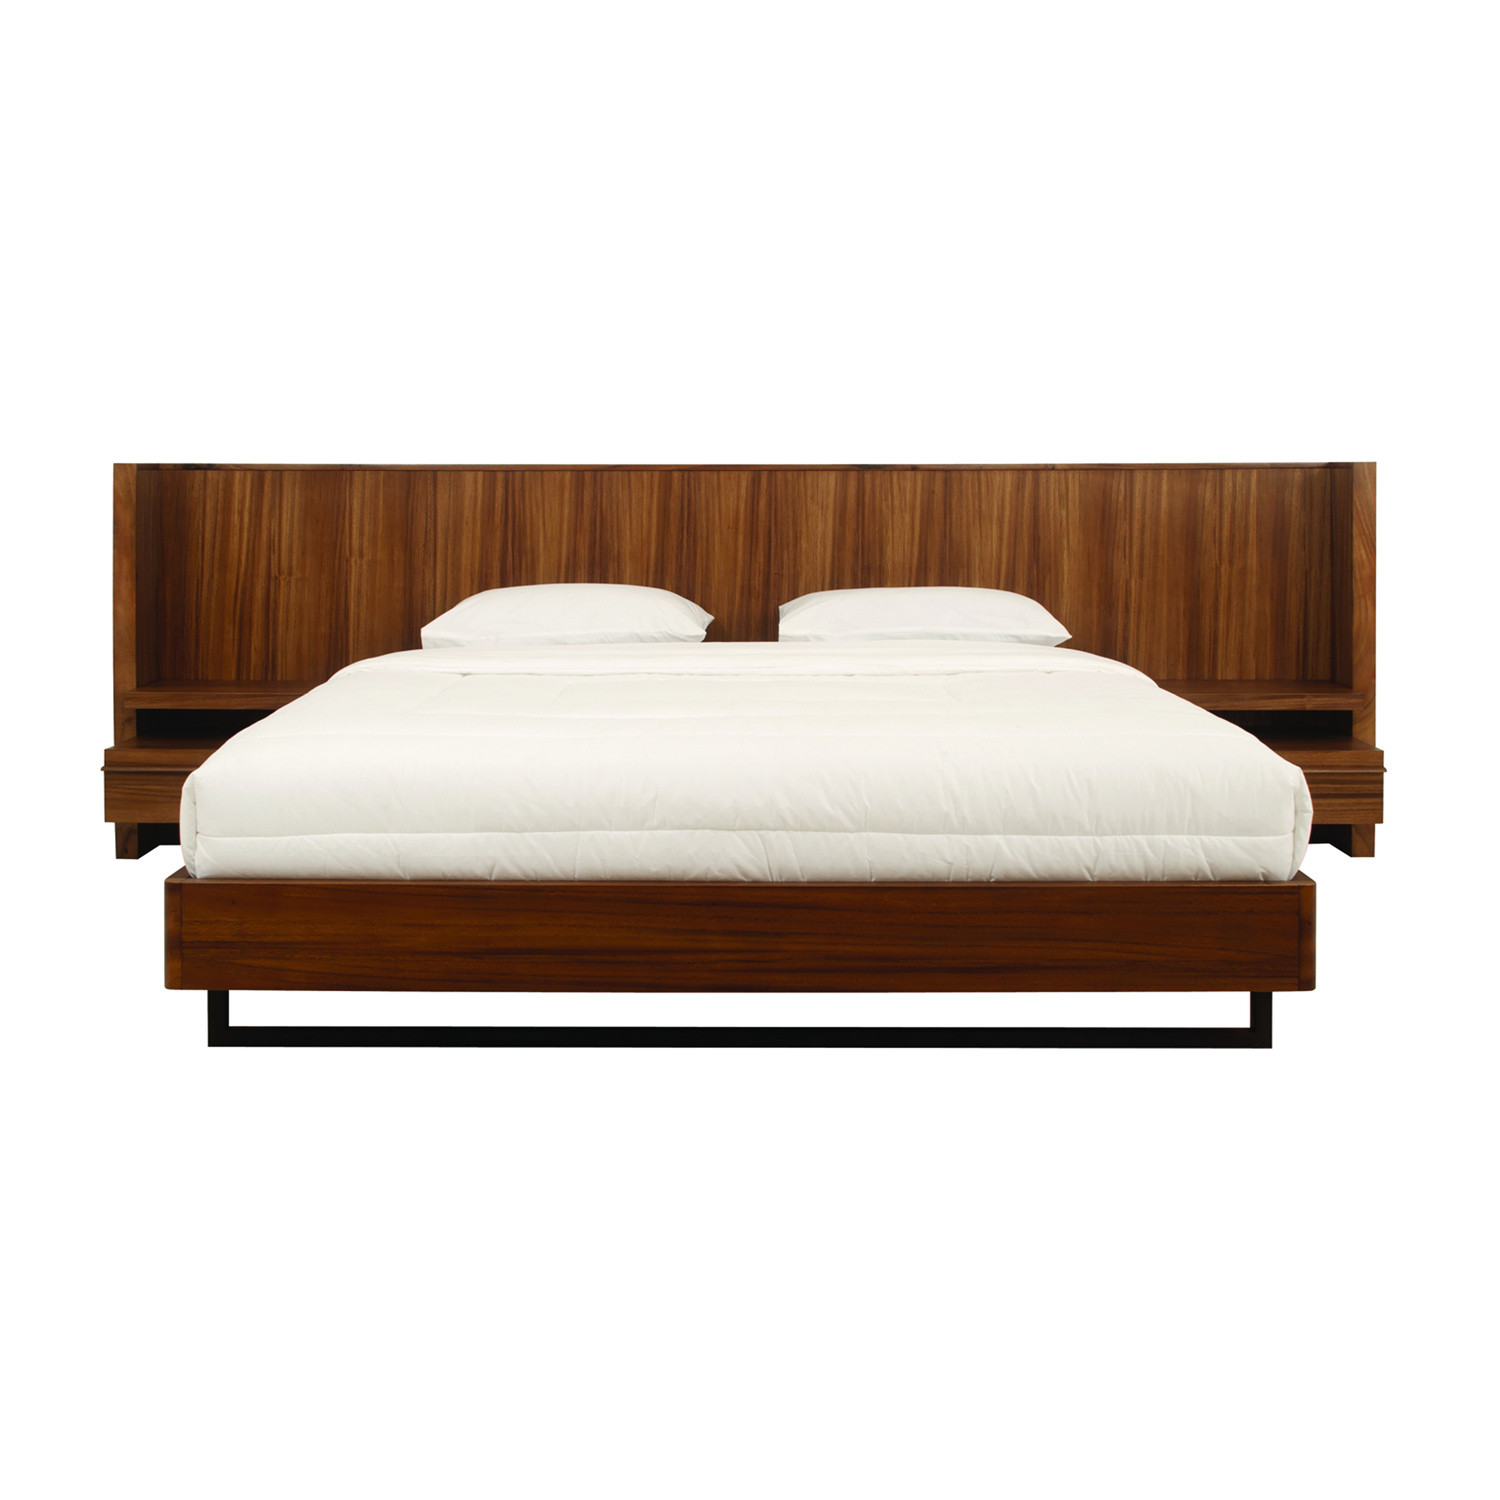 Bali Queen Bedframe Urbia Imports Touch of Modern